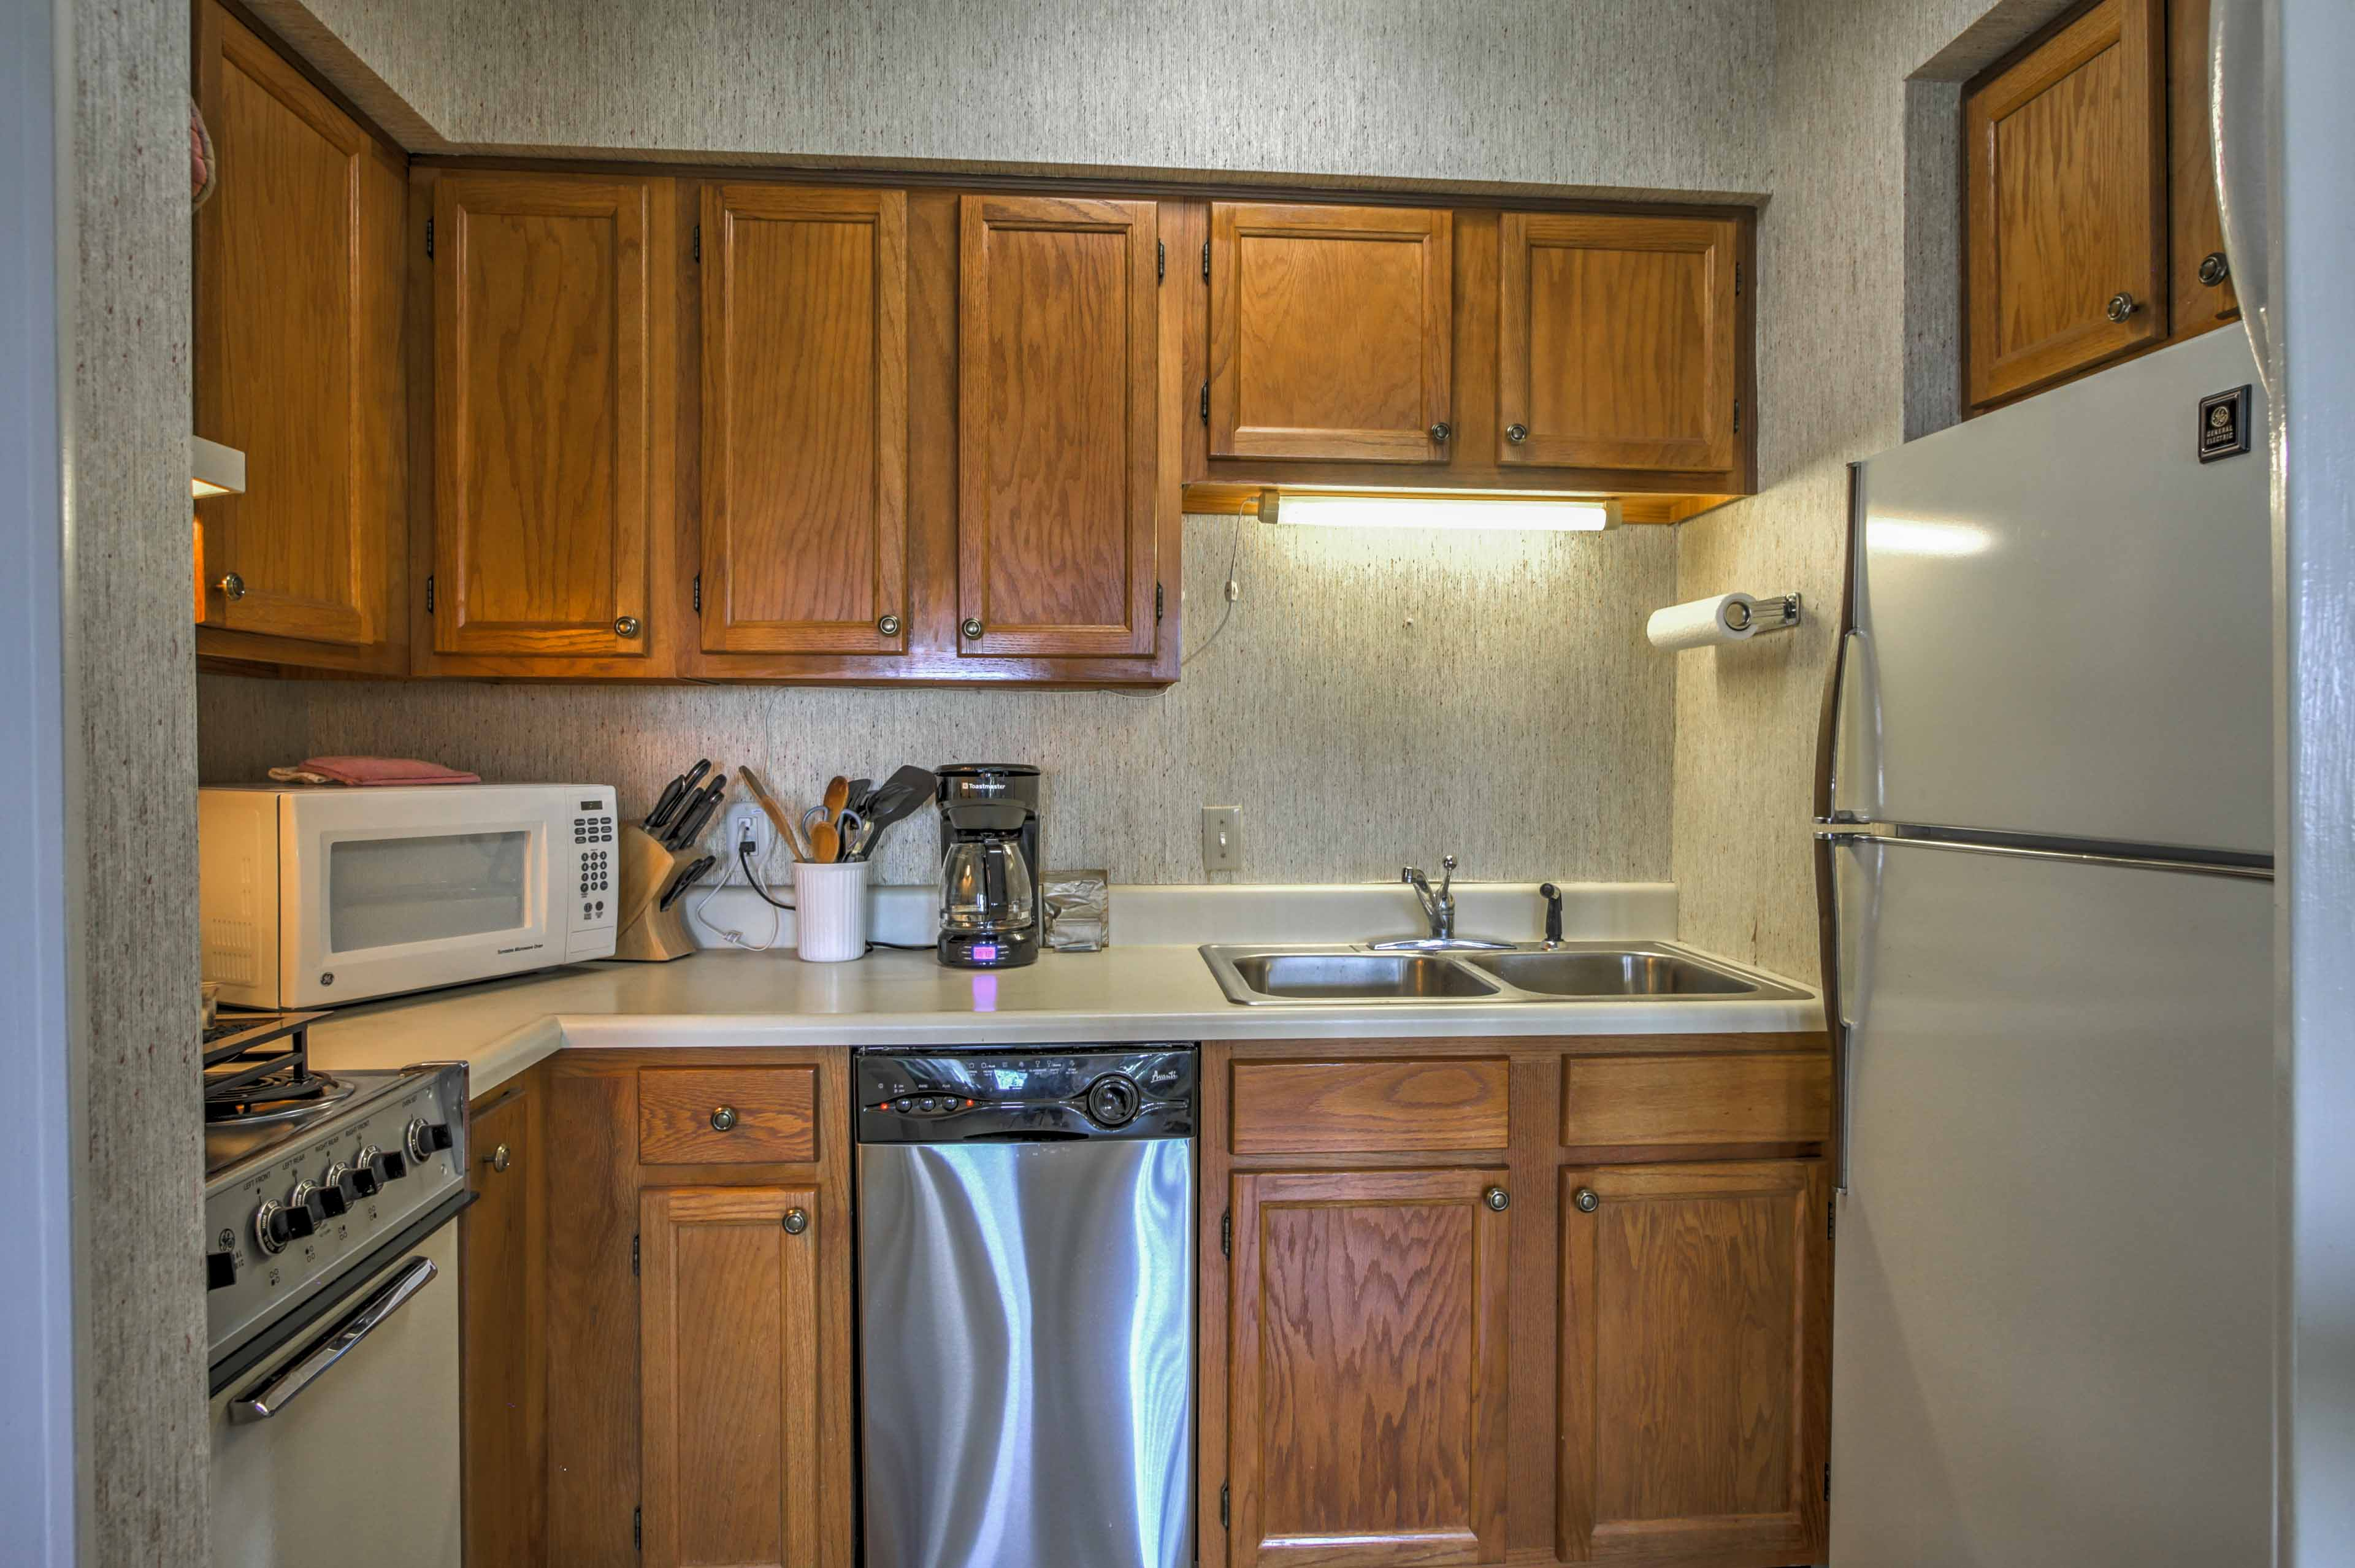 Cook tasty meals in the well-equipped kitchenette.